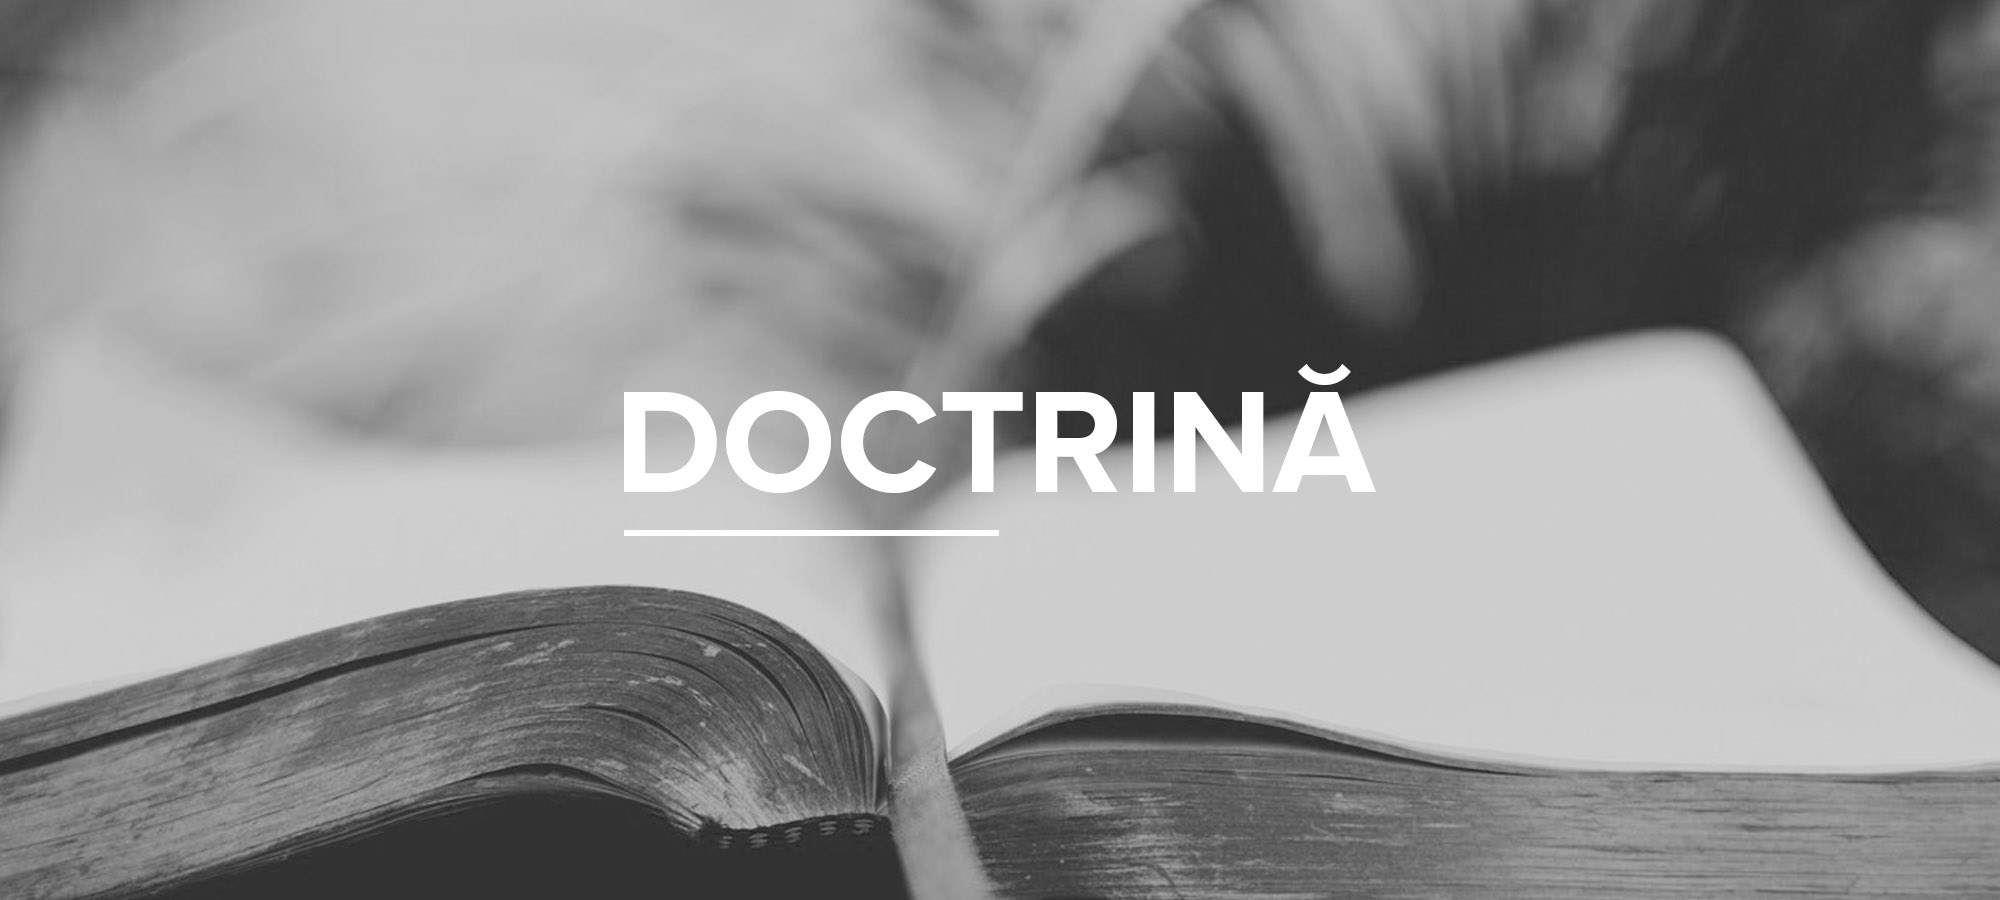 Doctrină